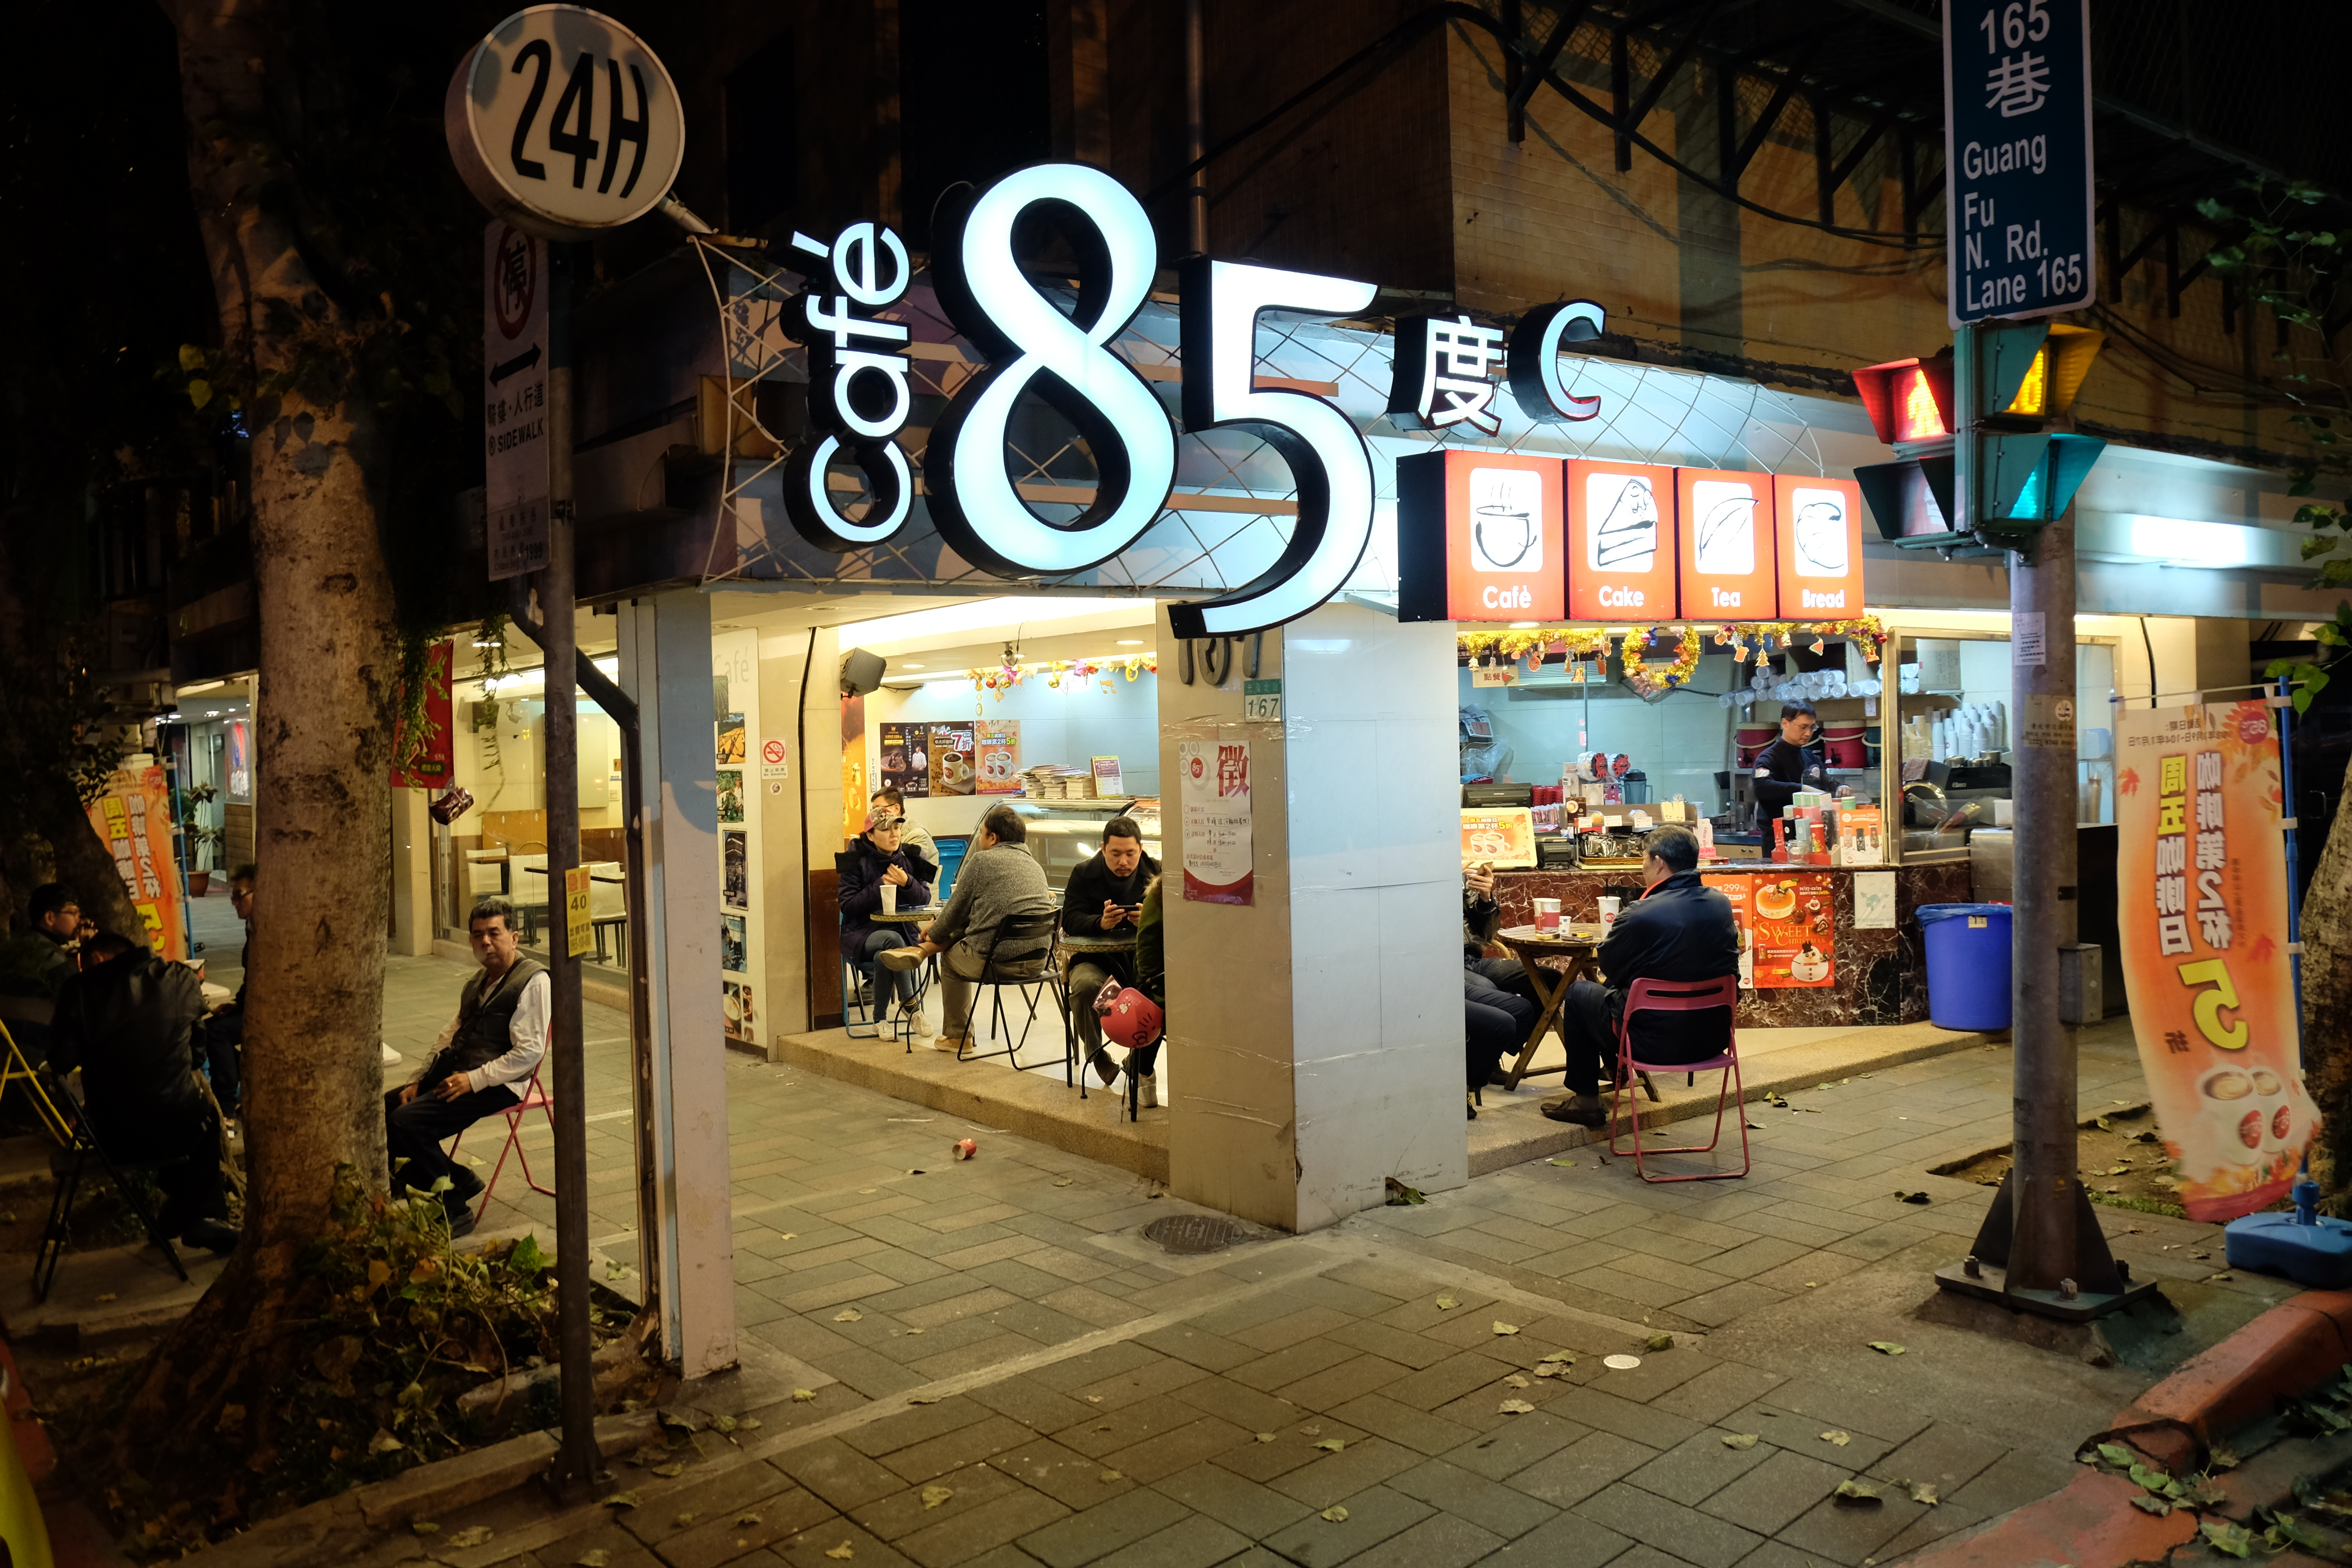 Asian Shoe Size Conversion Chart: 85C Bakery Cafe - Wikipedia,Chart